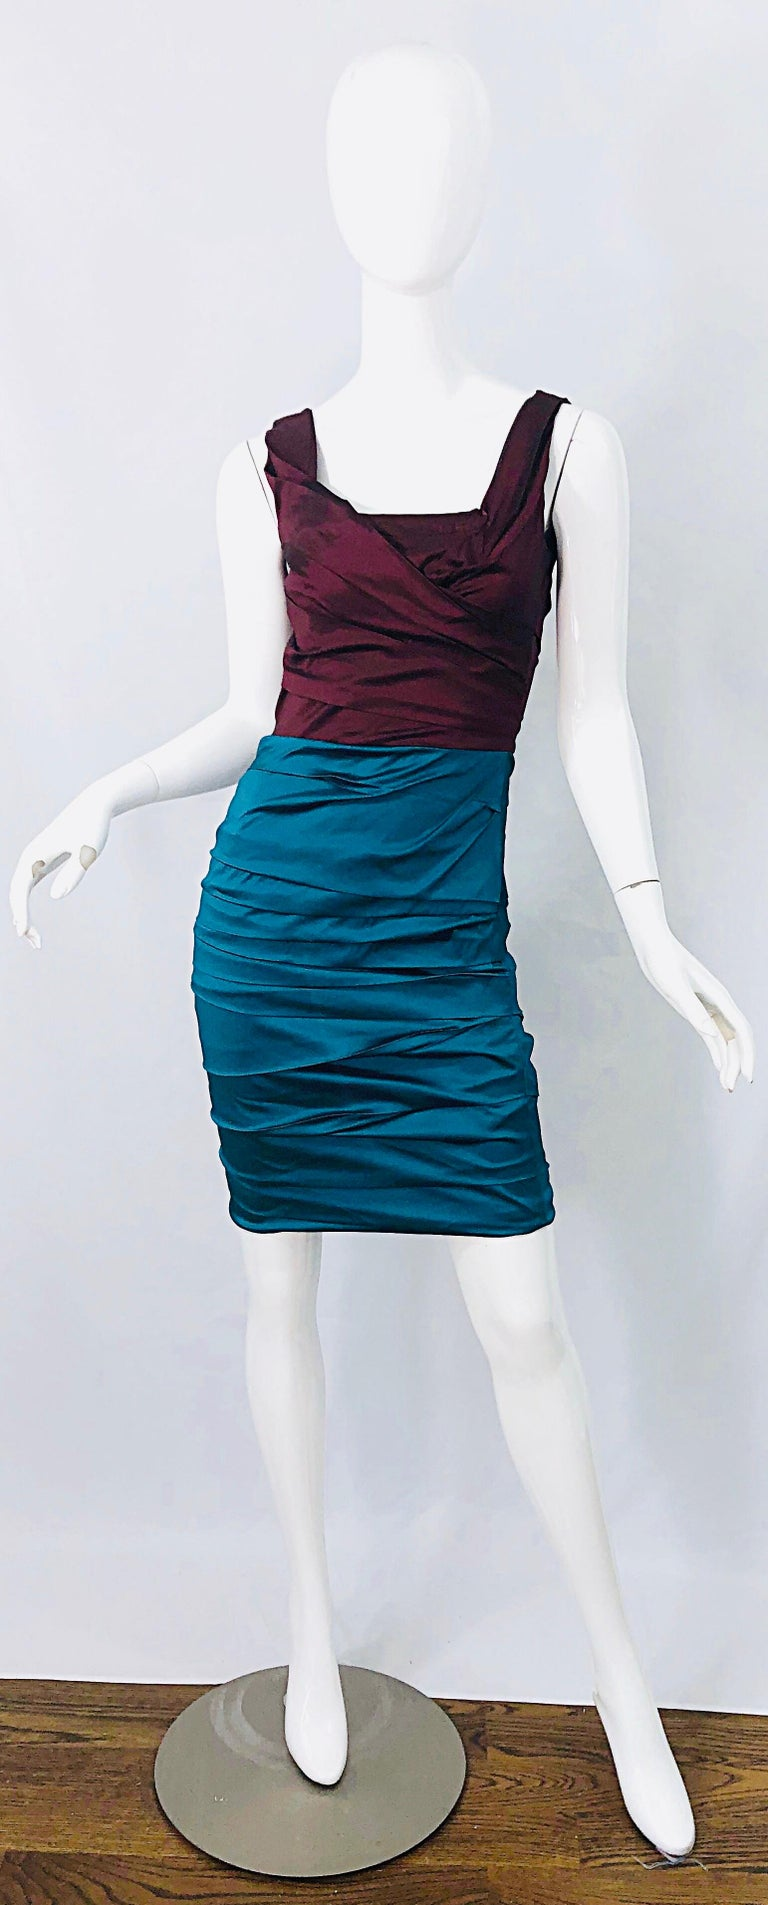 NWT Dolce and Gabbana 1990s Burgundy Turquoise Blue Colorblock Vintage Dress For Sale 7